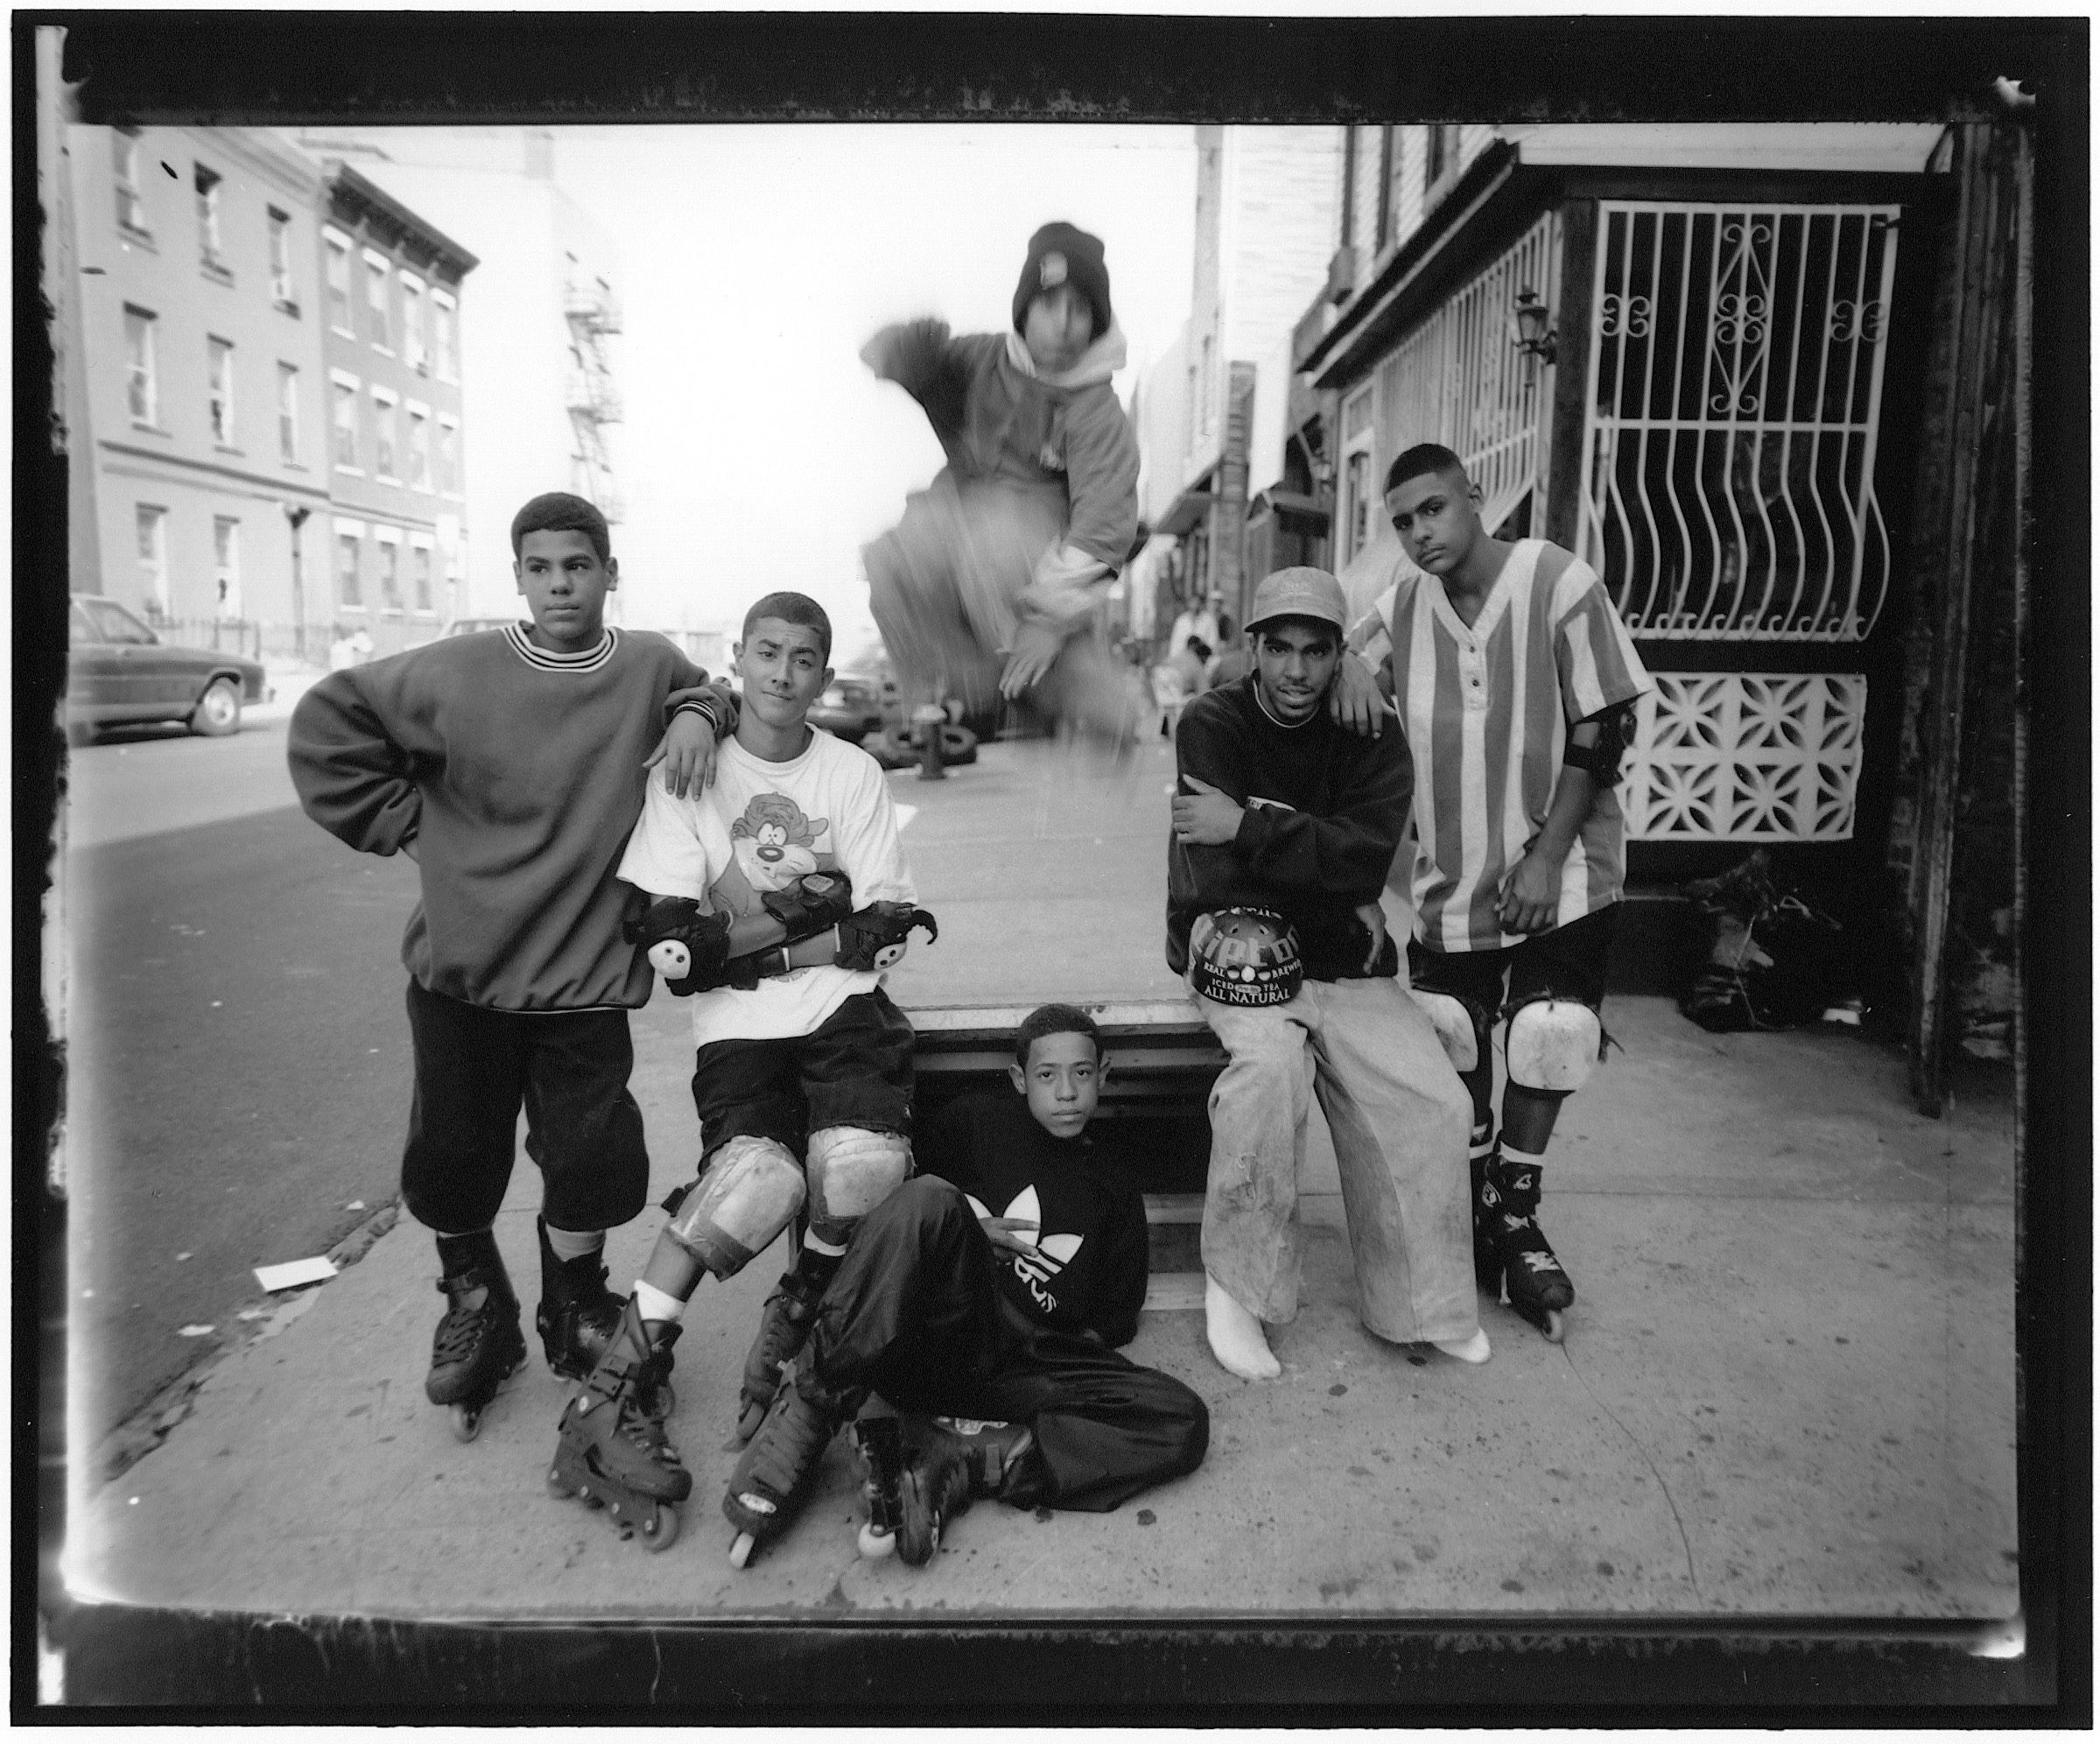 The underground skate scene of '90s Brooklyn